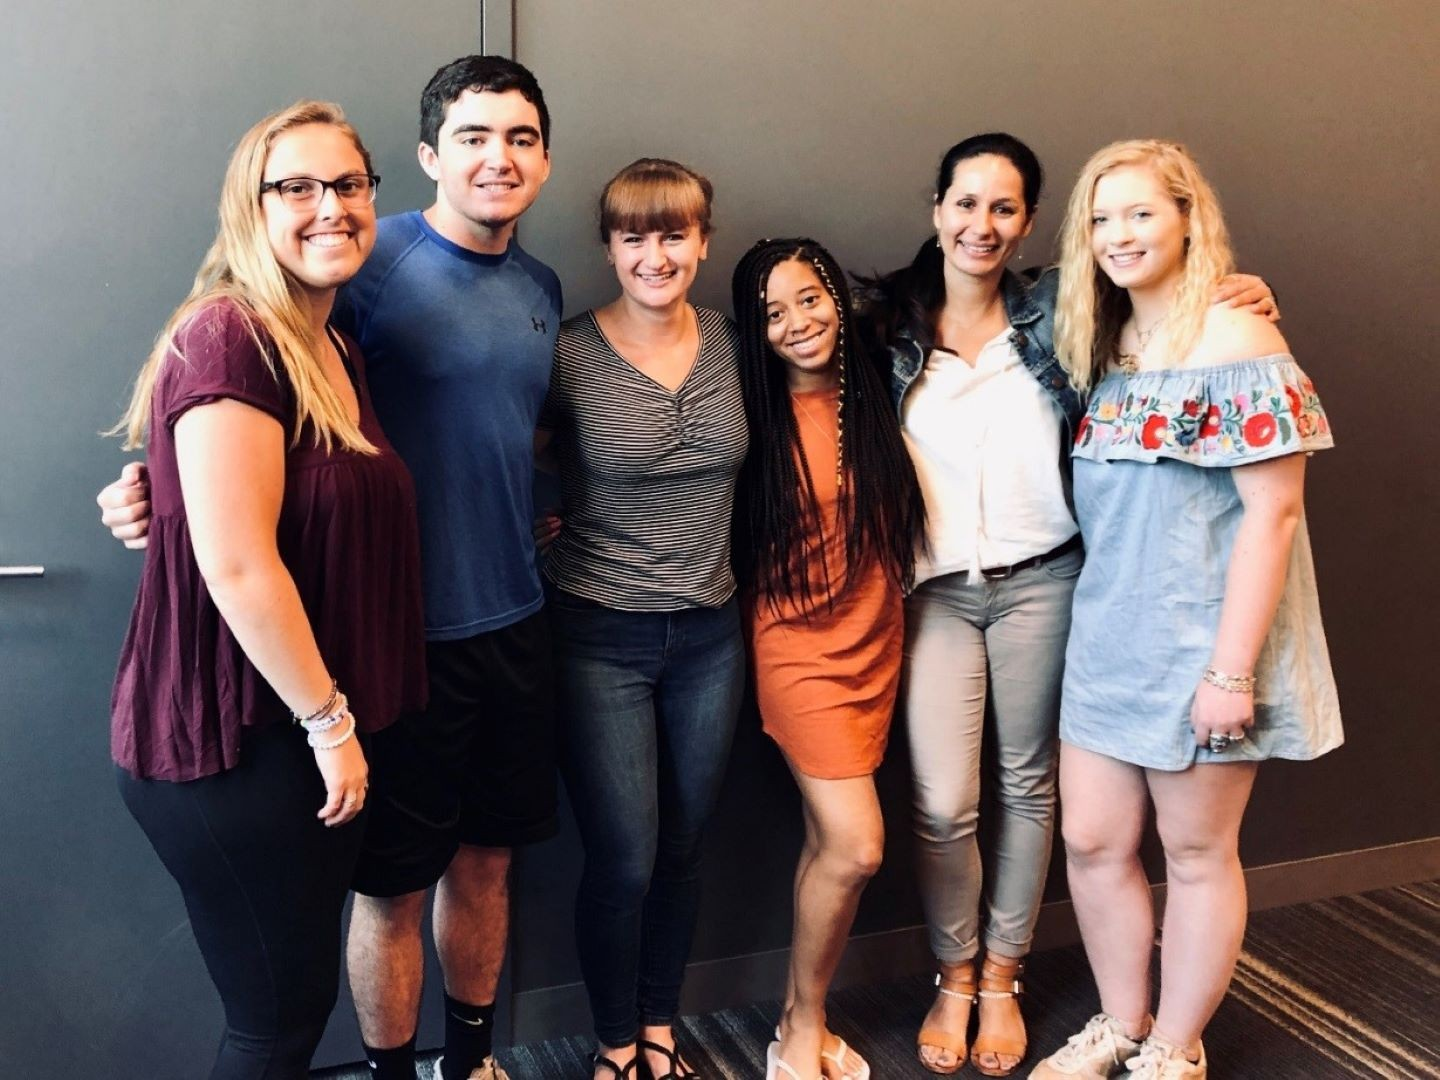 2019 Student SURE Team Project. Pictured left to right: Molly Parent '20, Keelan Hynes '20, Renee Radavich '20, Jadaiya Stanley '20, Professor Anamika Twyman-Ghoshal and Kayla McKeon, Amherst College '22